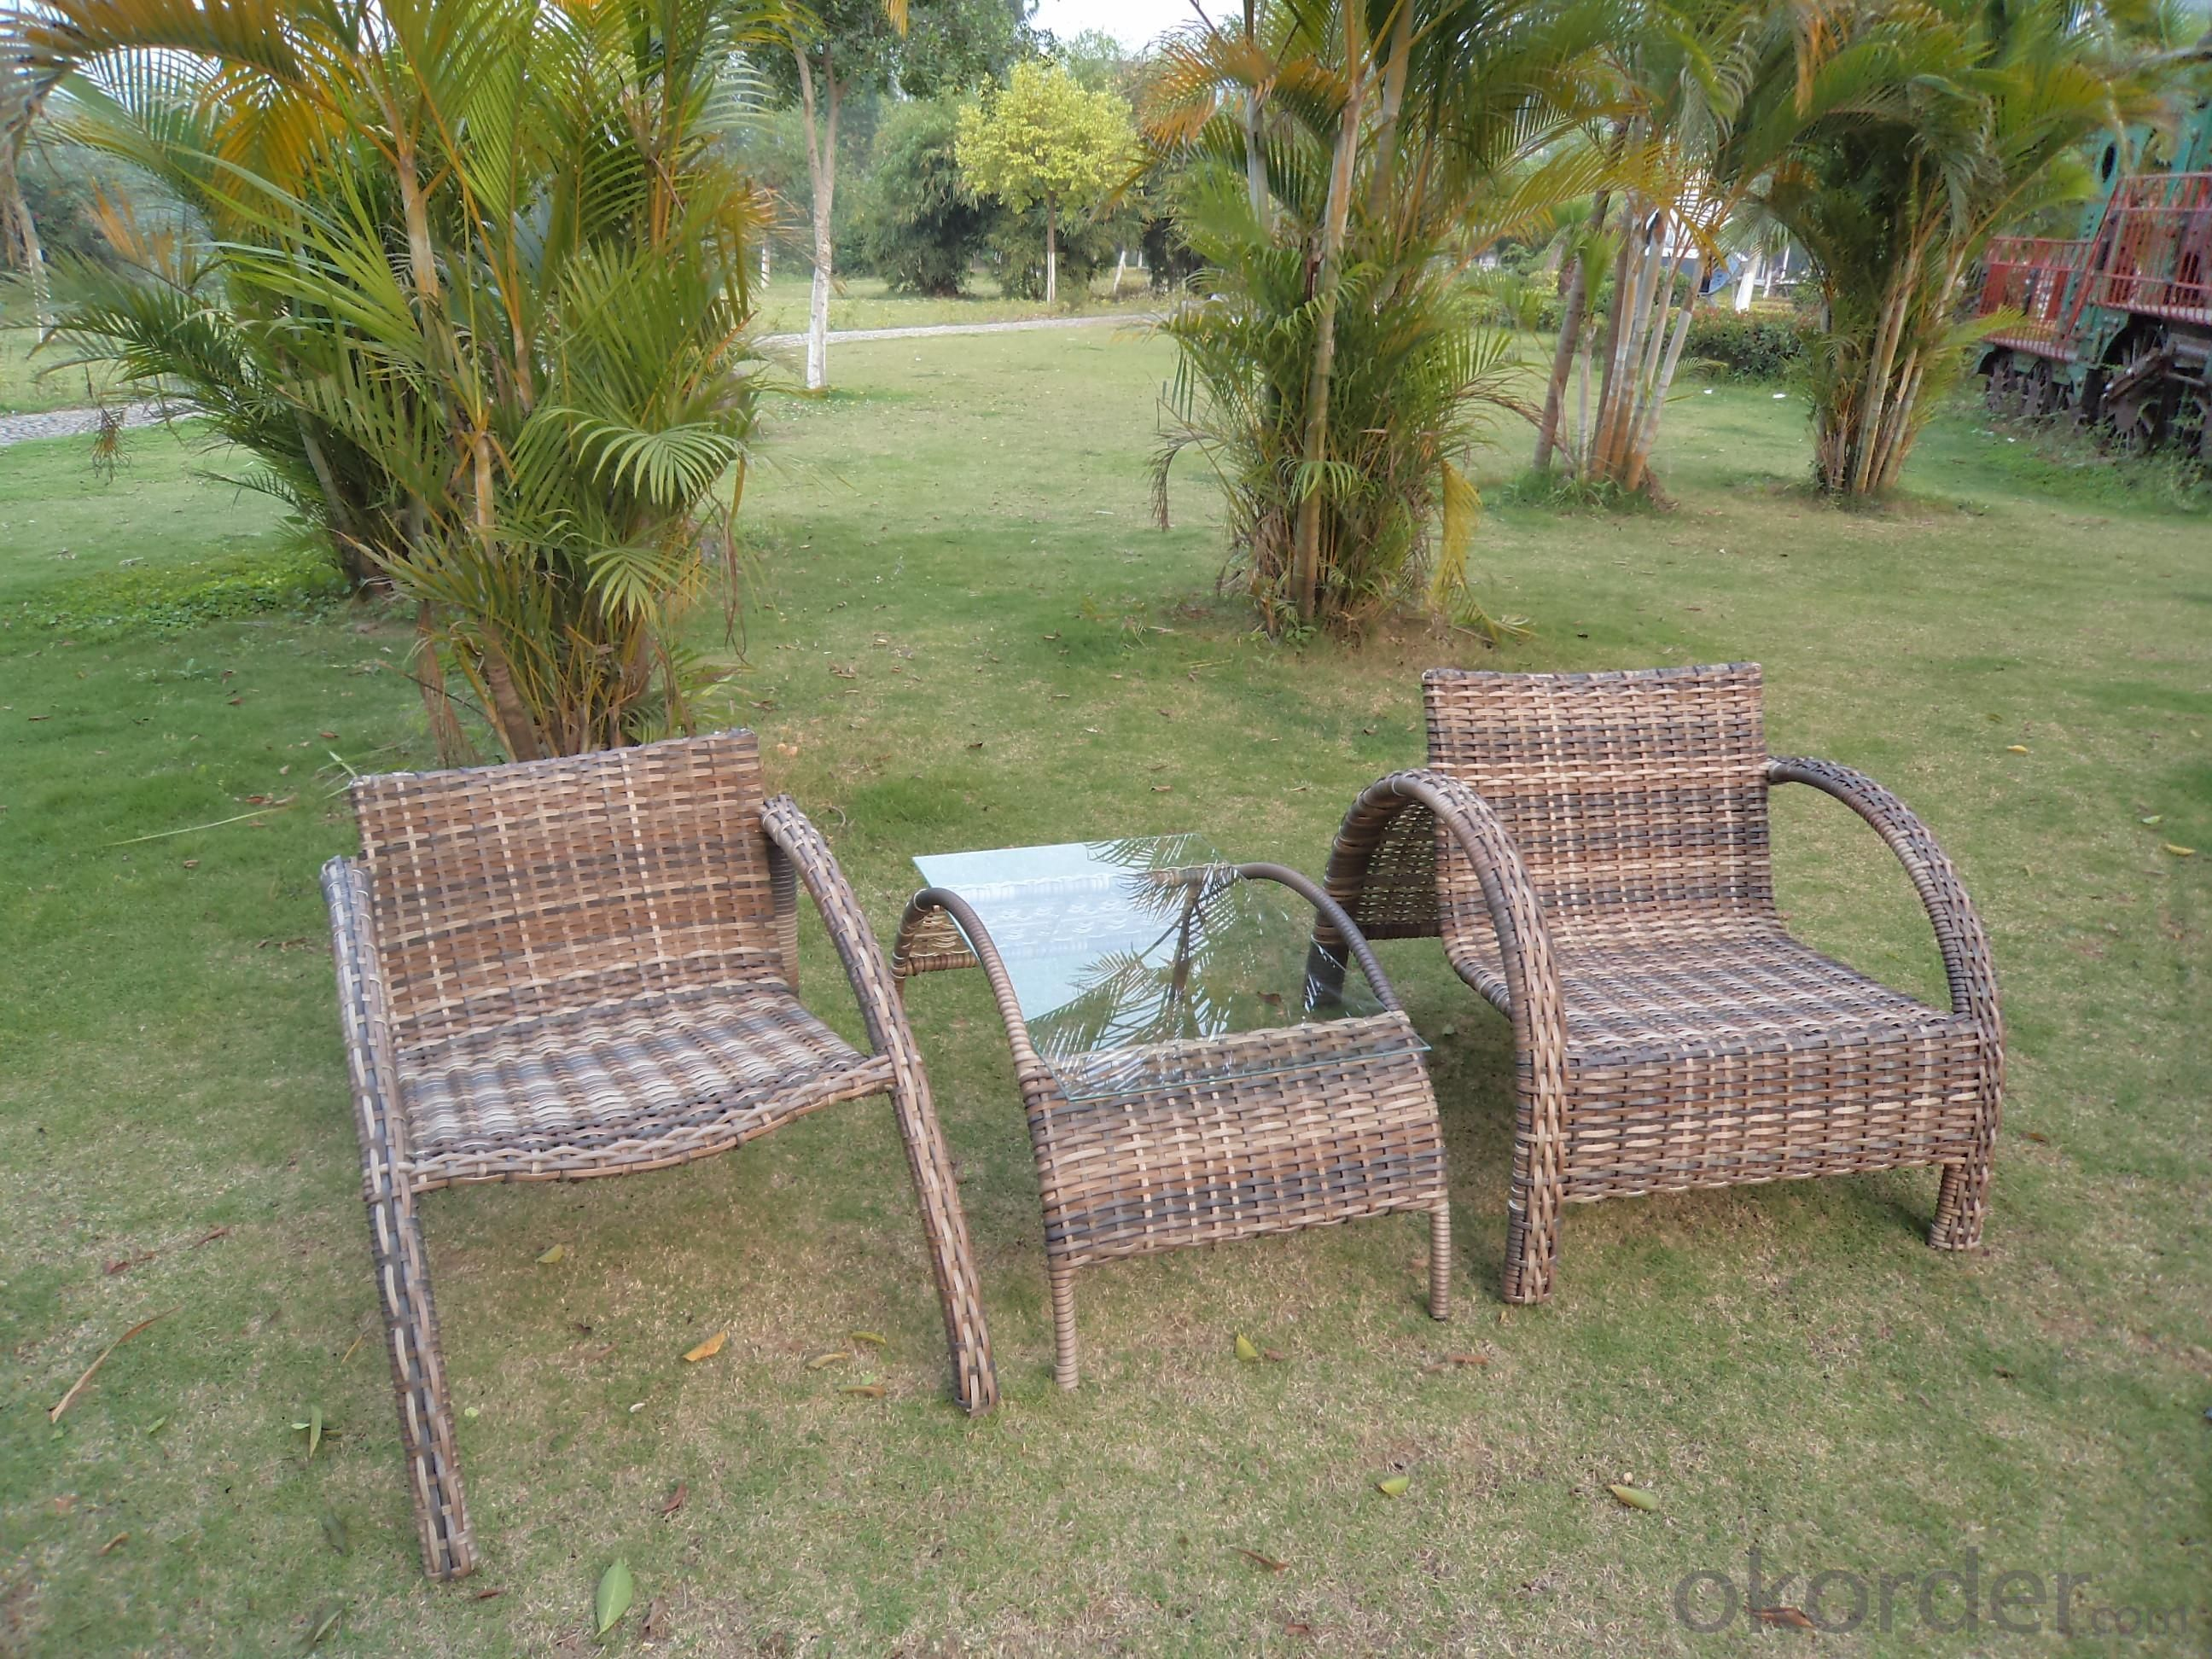 Rattan Aluminum Shelves Outdoor Garden Furniture Two Chair And A Tea Table